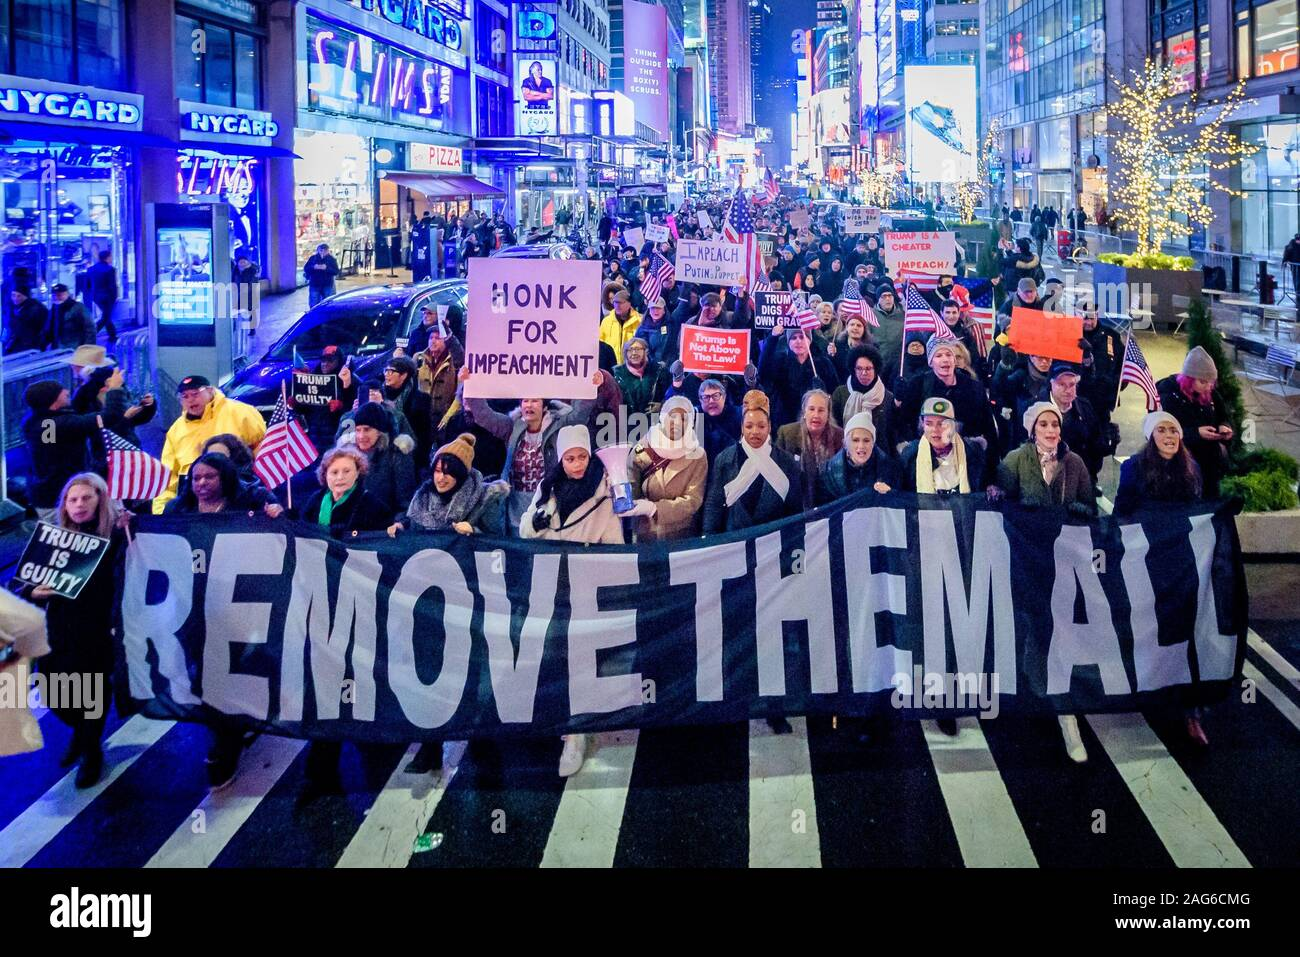 New York, New York, USA. 17th Dec, 2019. The night before the House of Representatives takes a somber vote to impeach Trump, hundreds of thousands of Americans joined the 'Nobody Is Above the Law' coalition at more than 500 rallies planned around the country, calling on the U.S. House to vote to impeach President Donald Trump. In New York City thousands of protesters took to the streets, gathering at Father Duffy Square in Times Square, and marched down Broadway to Union Square. Credit: Erik McGregor/ZUMA Wire/Alamy Live News Stock Photo